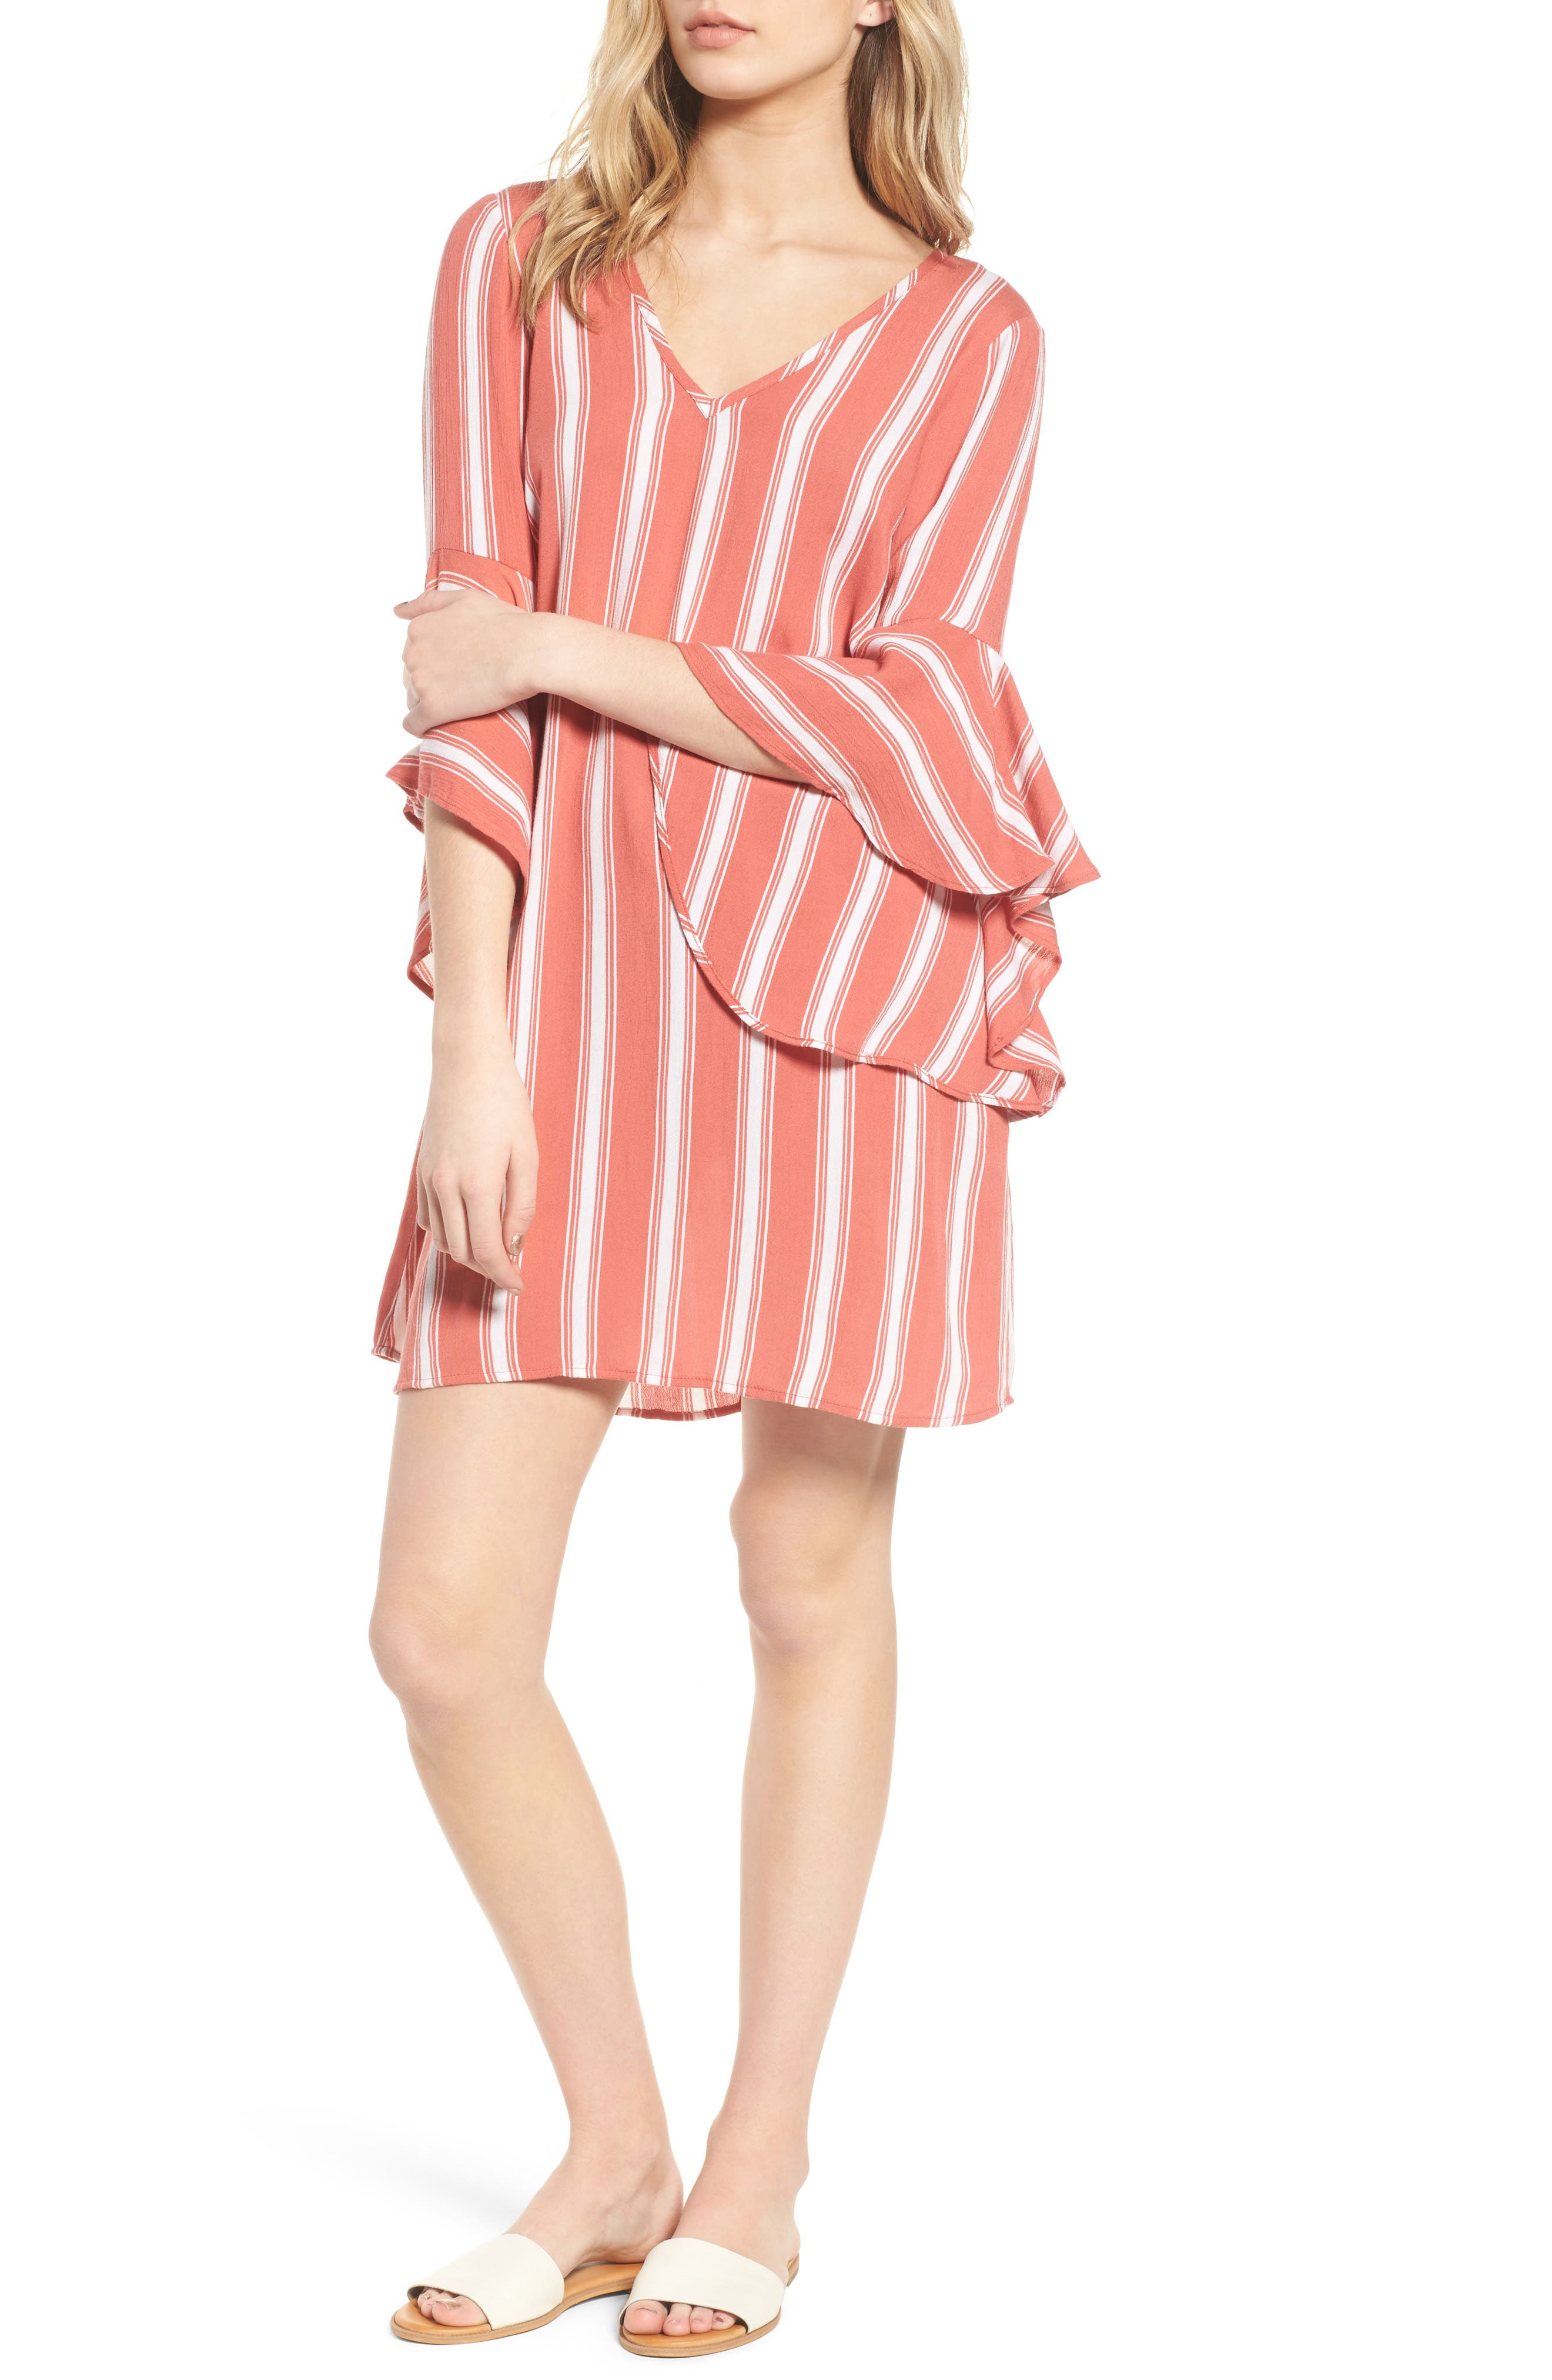 Ruffle Bell Sleeve Dress,                         Main,                         color, Dusty Coral/ Ivory